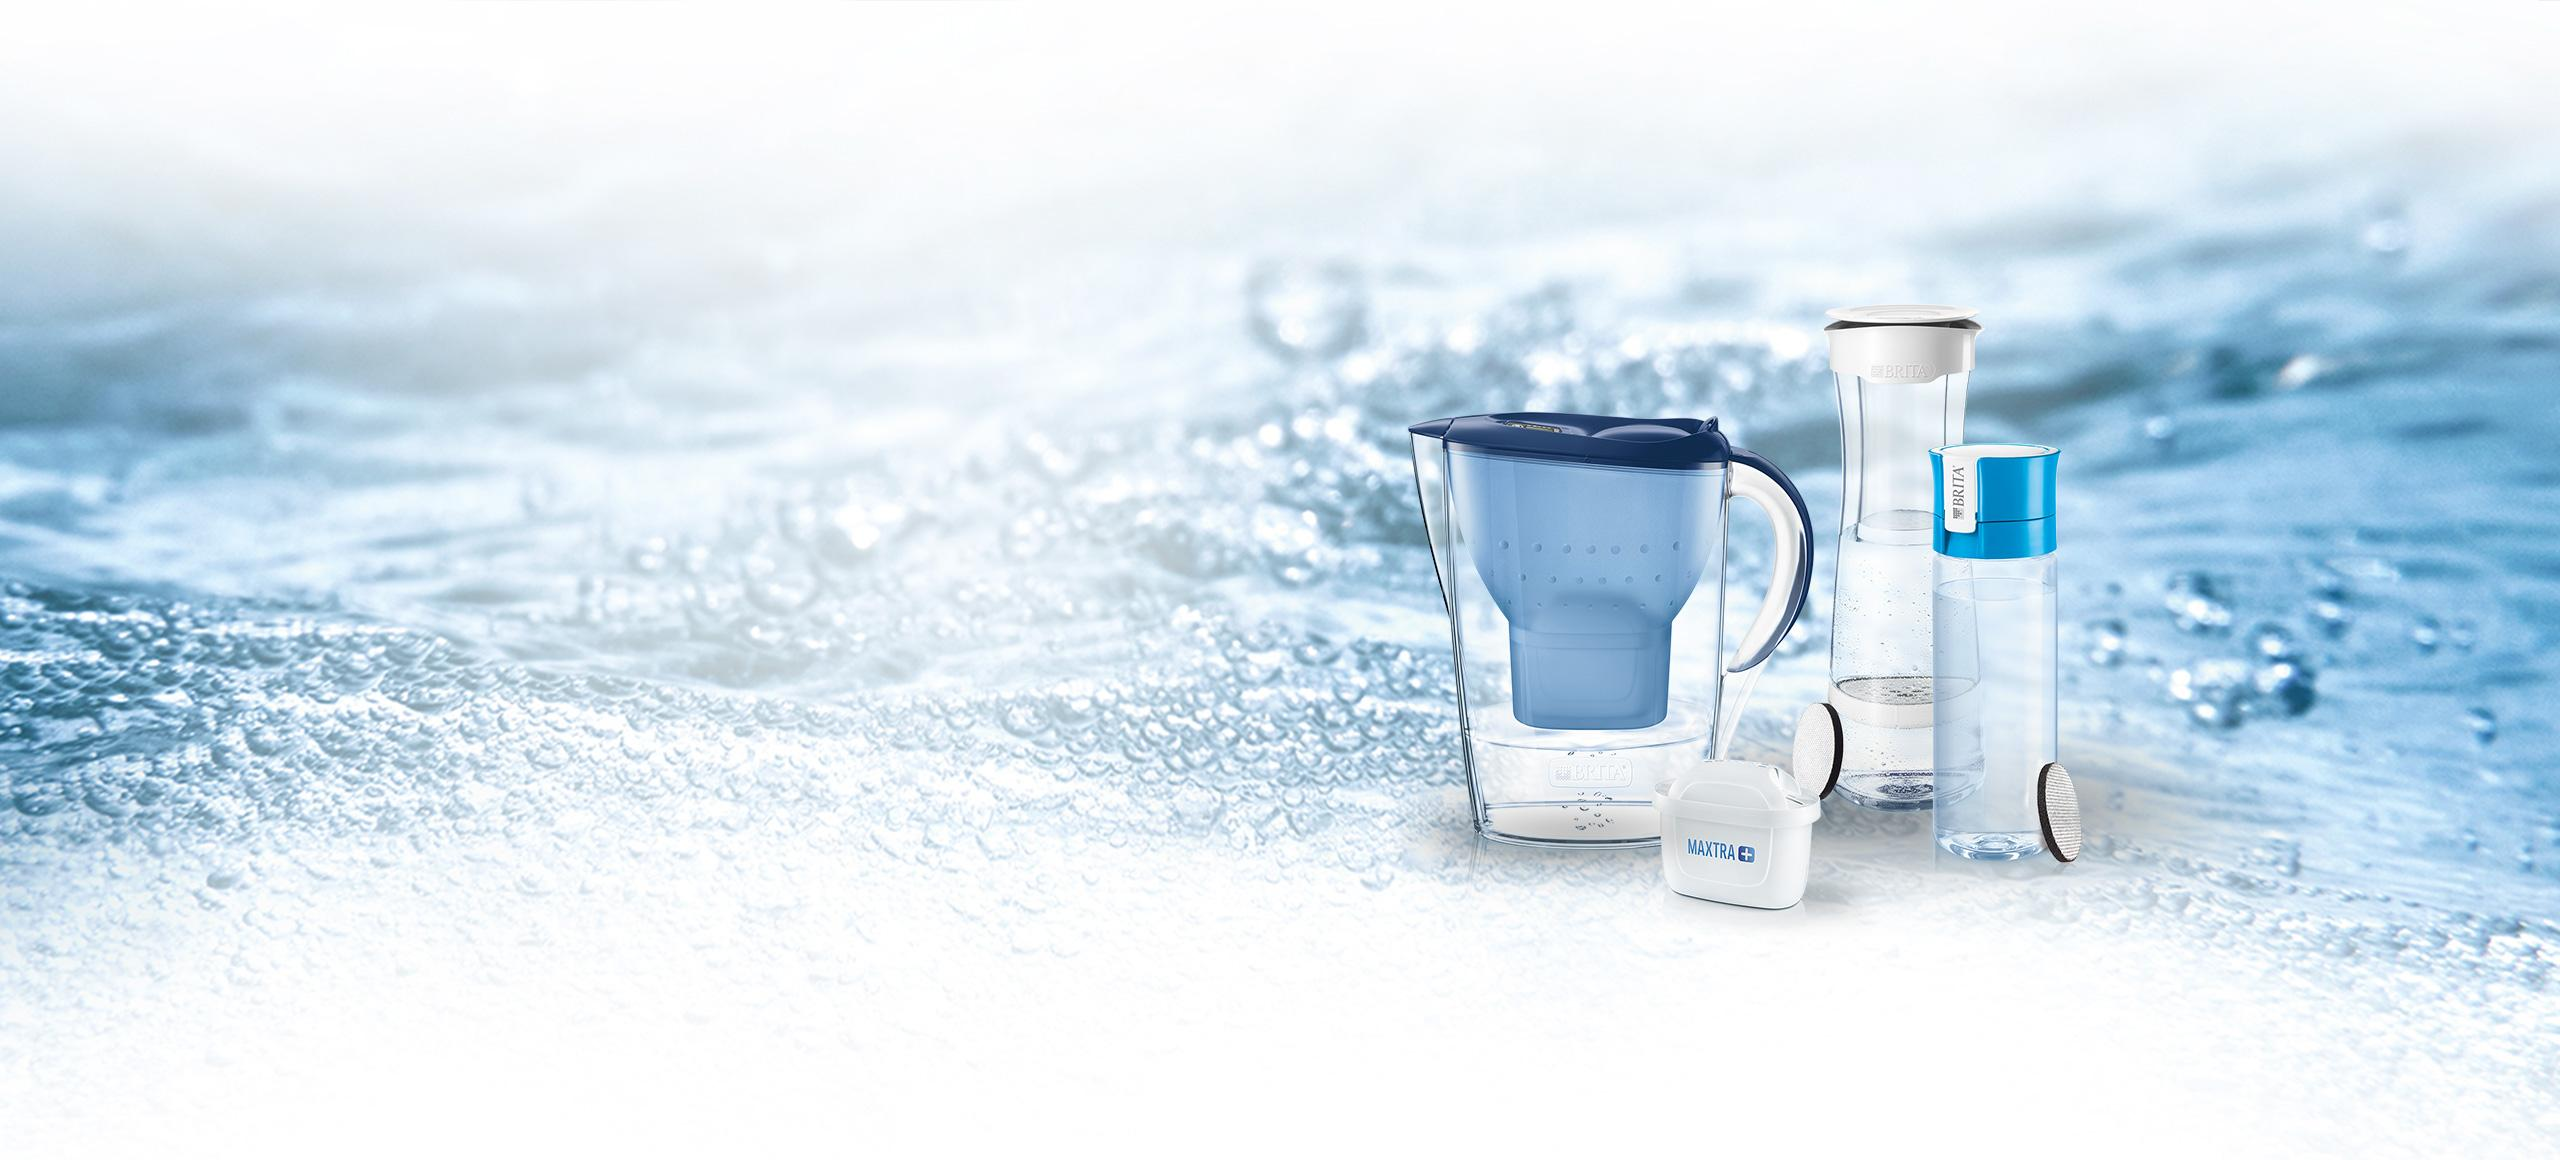 BRITA water filter for home and on the go